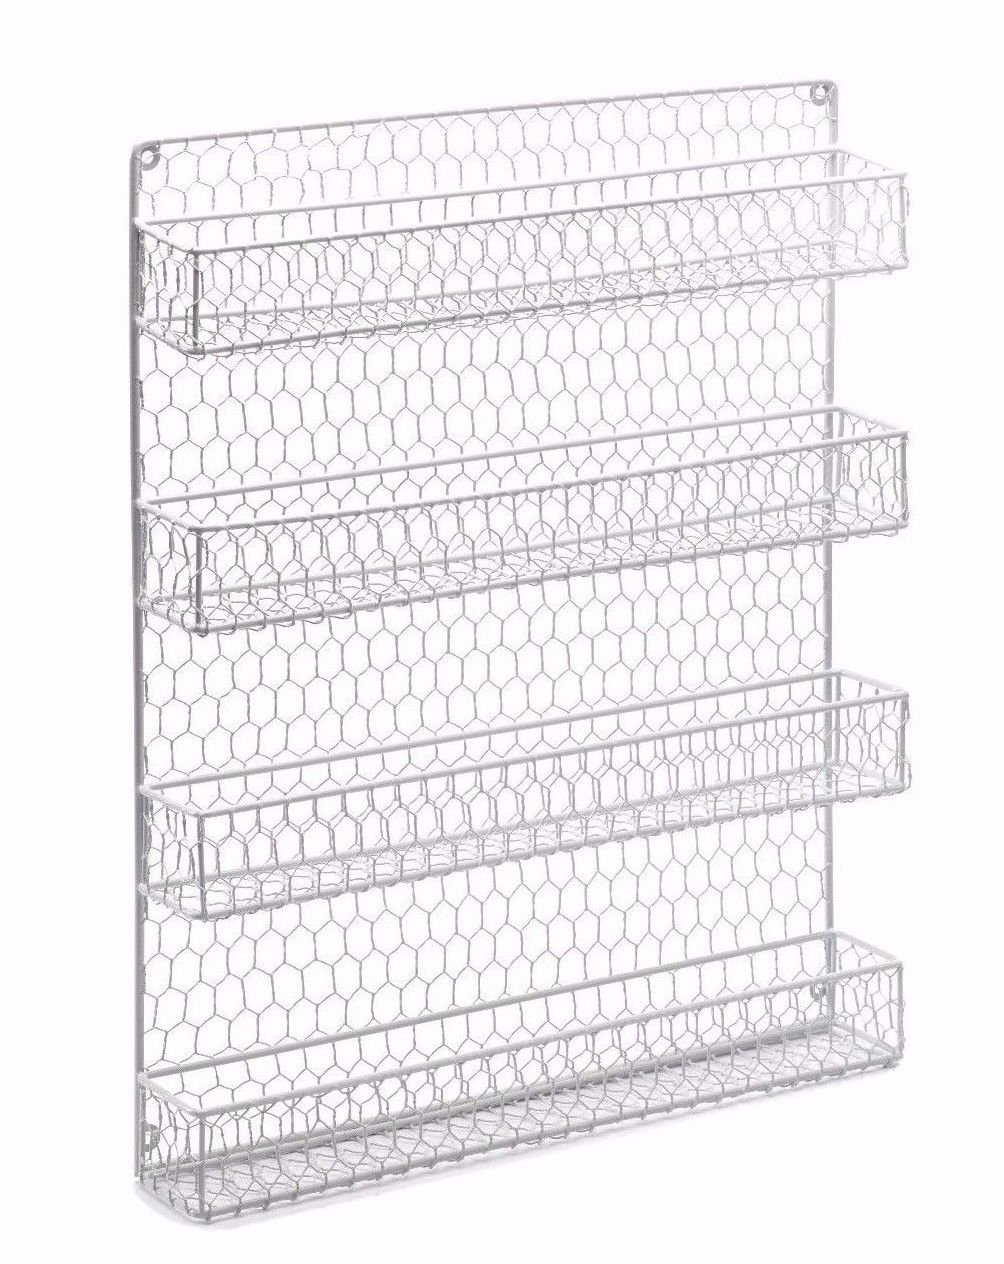 Chicken Wire Spice Rack - 4 Tier Country Metal - Cabinet, Wall ...